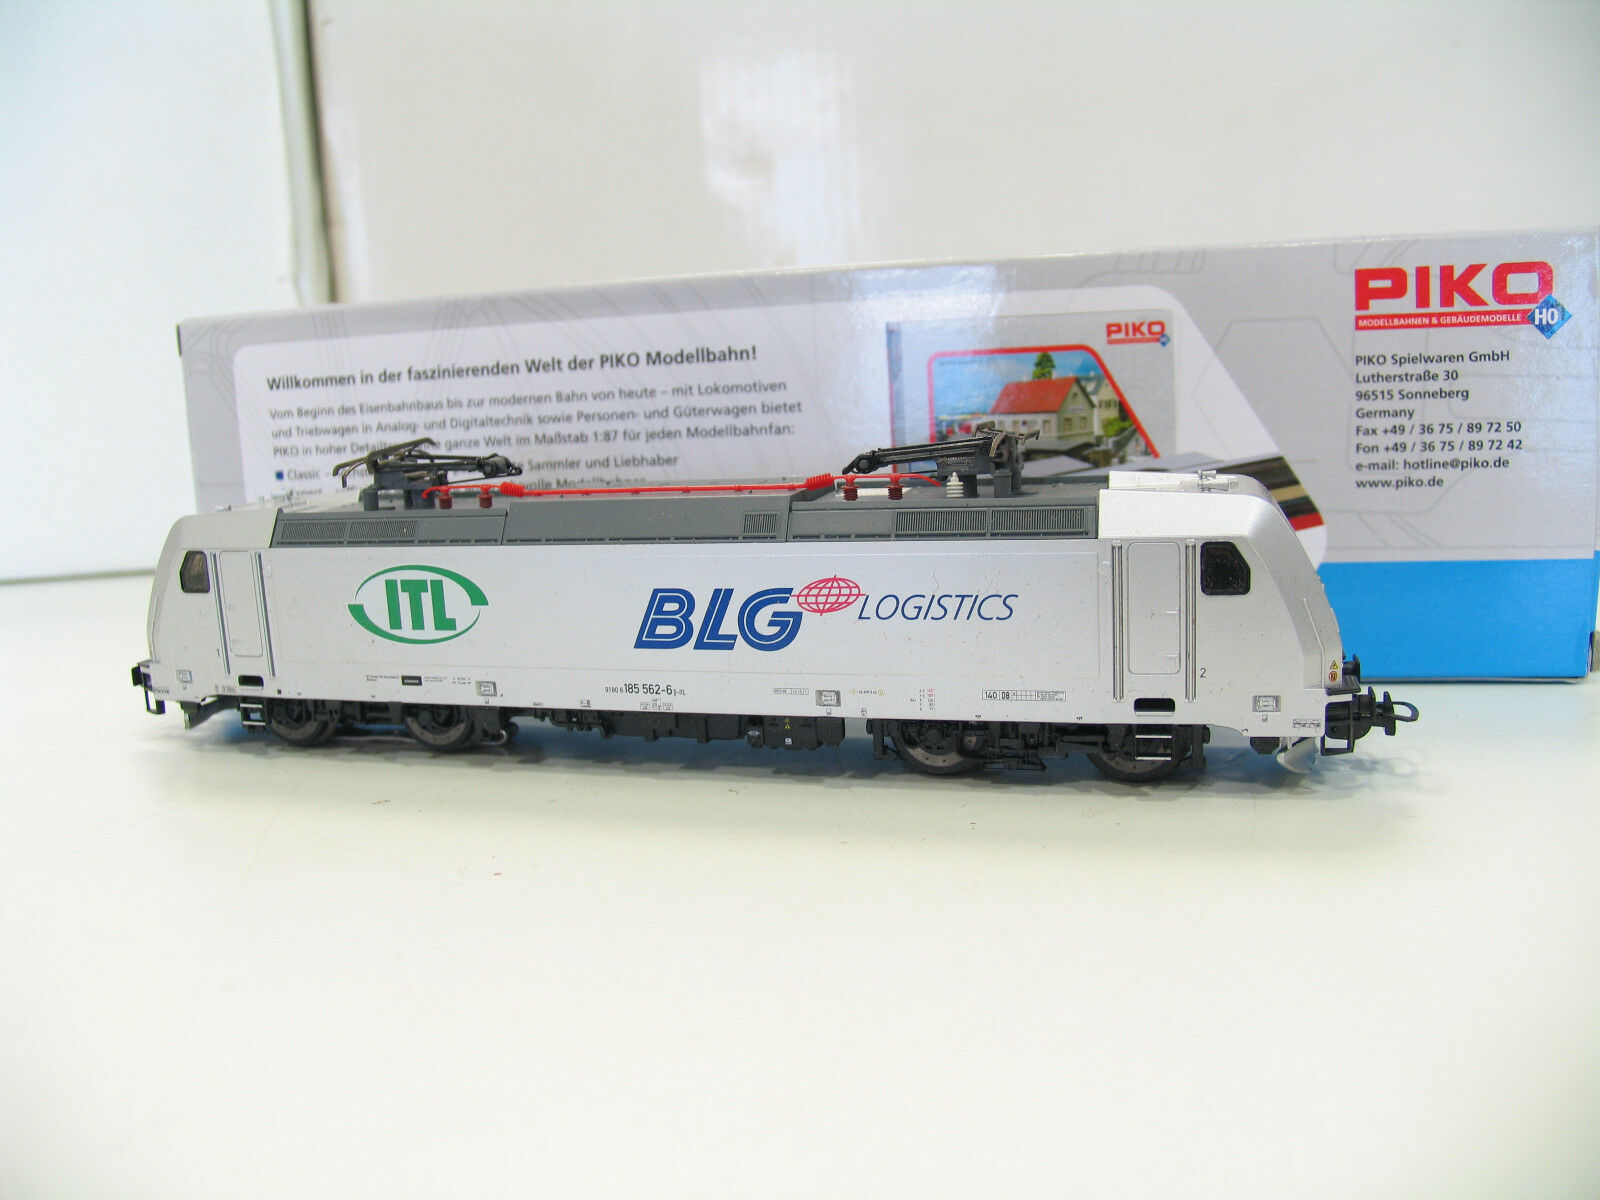 Piko 59355 E-Locomotive BR 185 ITL BLG logistig AC Digital a1283